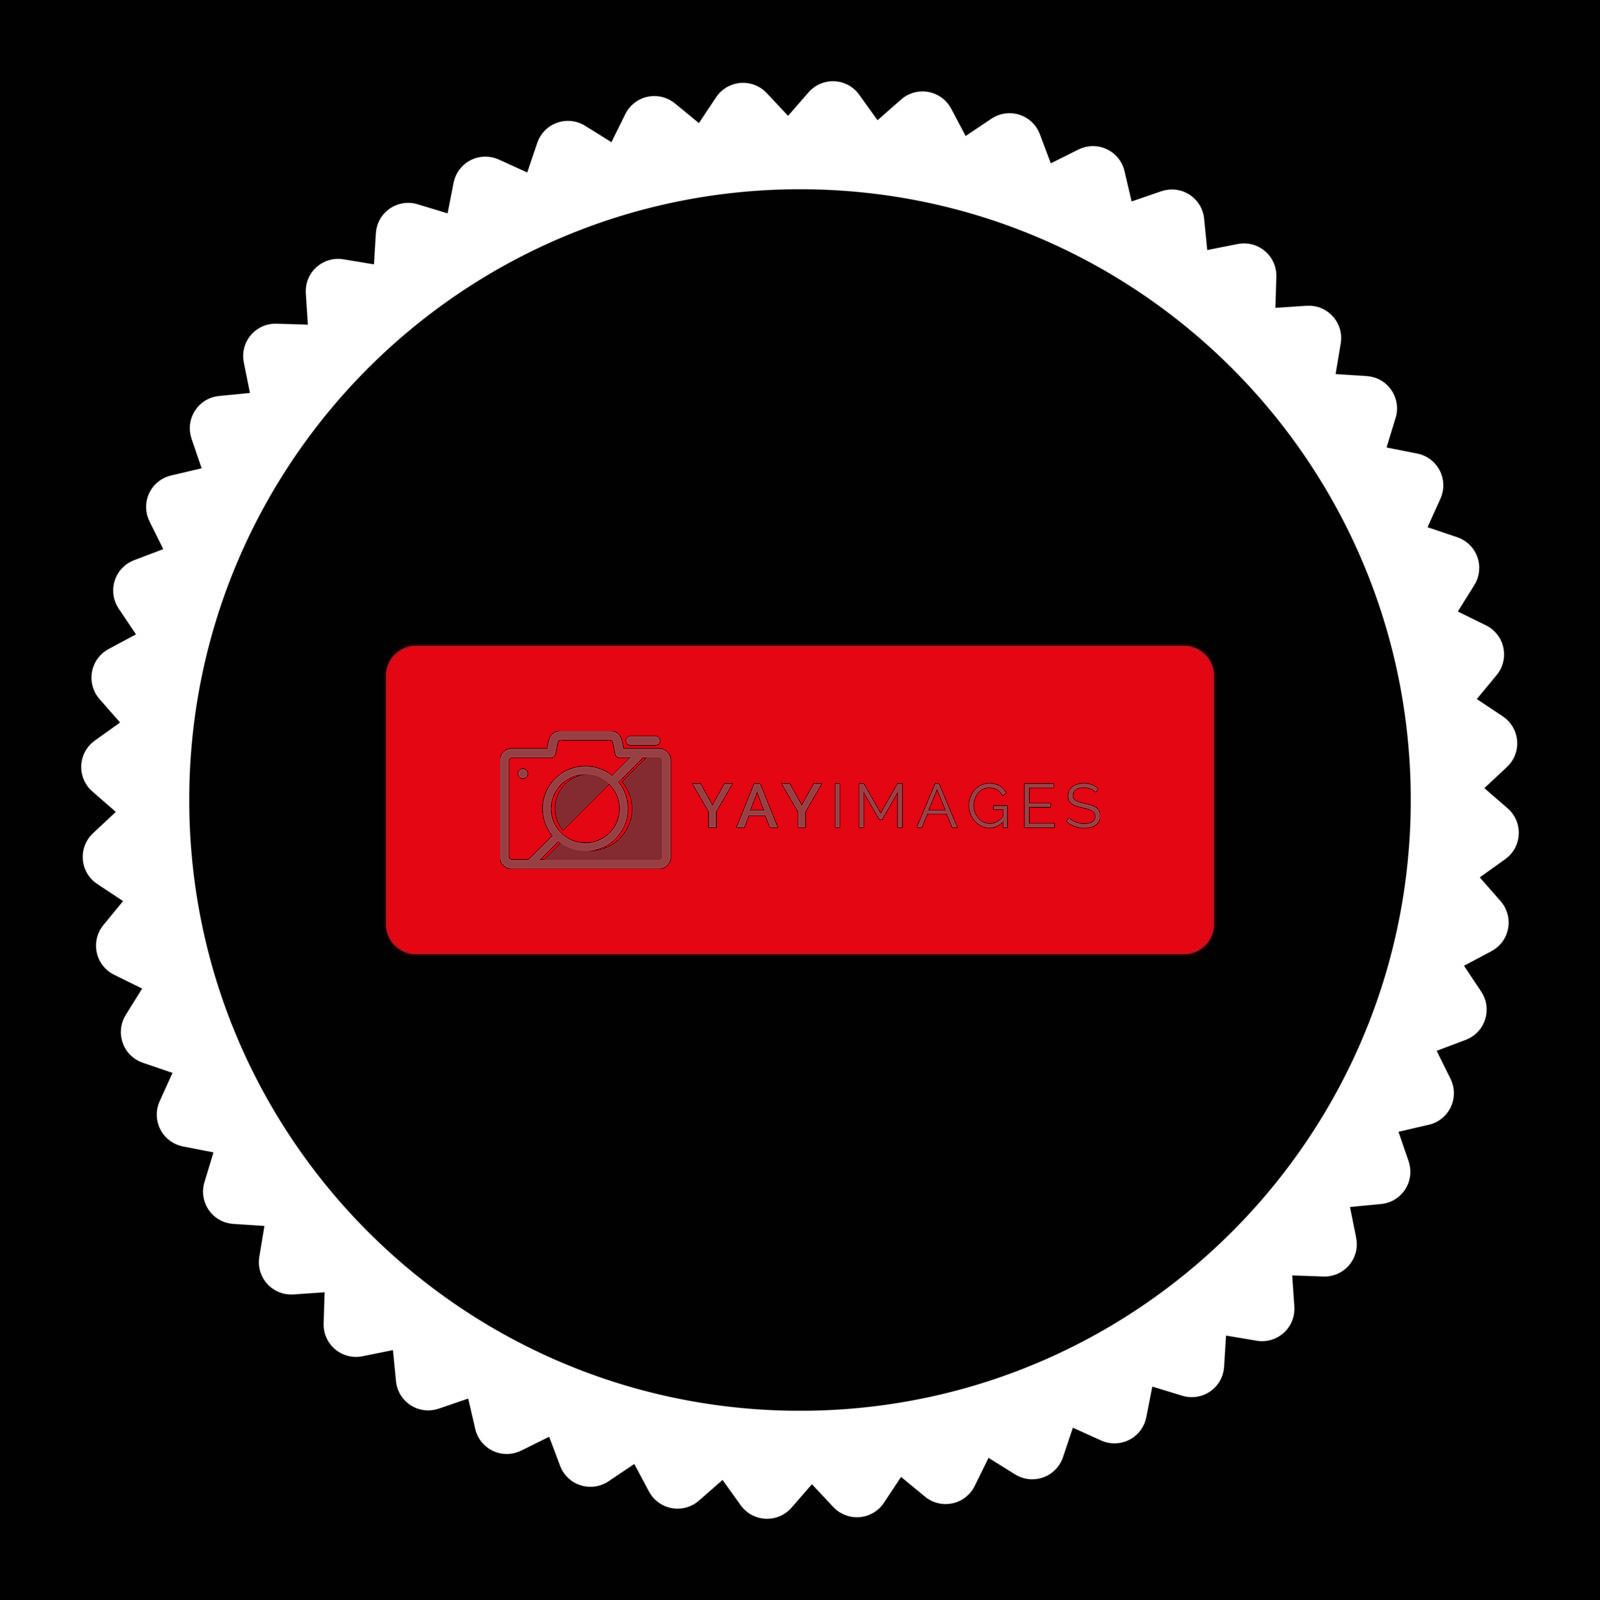 Minus flat red and white colors round stamp icon by Aha-Soft